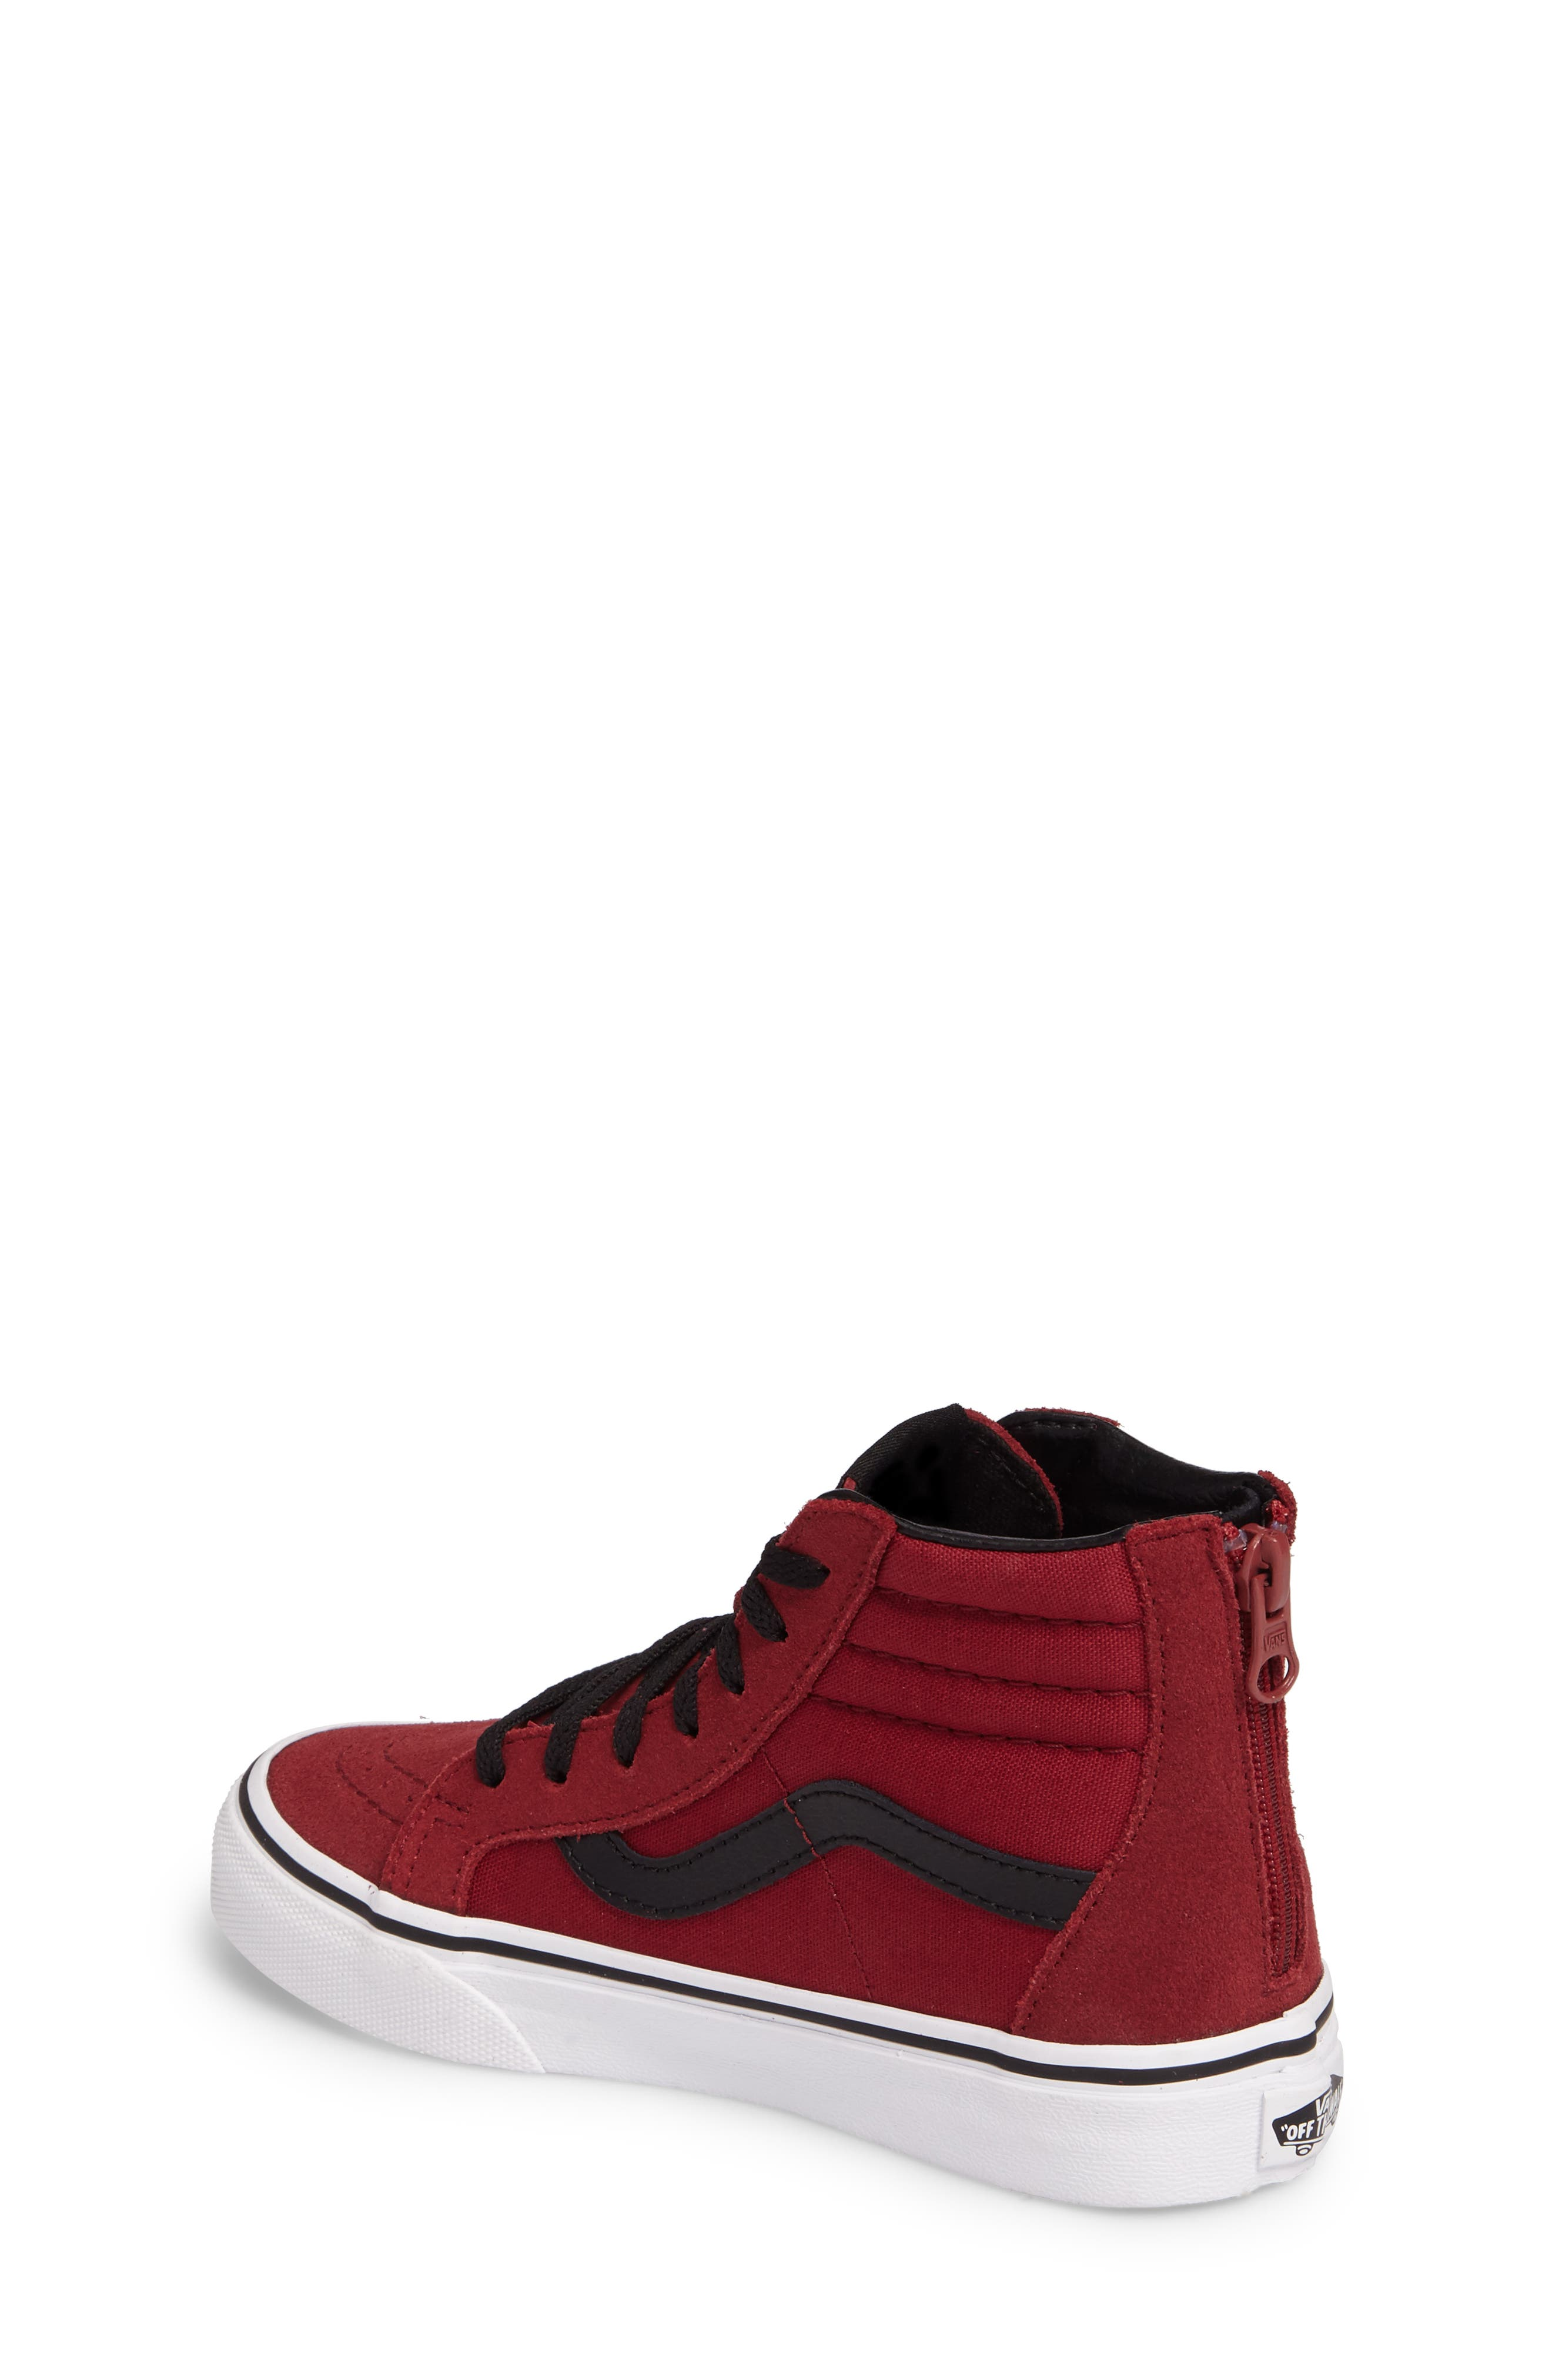 SK8-Hi Zip Sneaker,                             Alternate thumbnail 2, color,                             TIBETAN RED/ BLACK